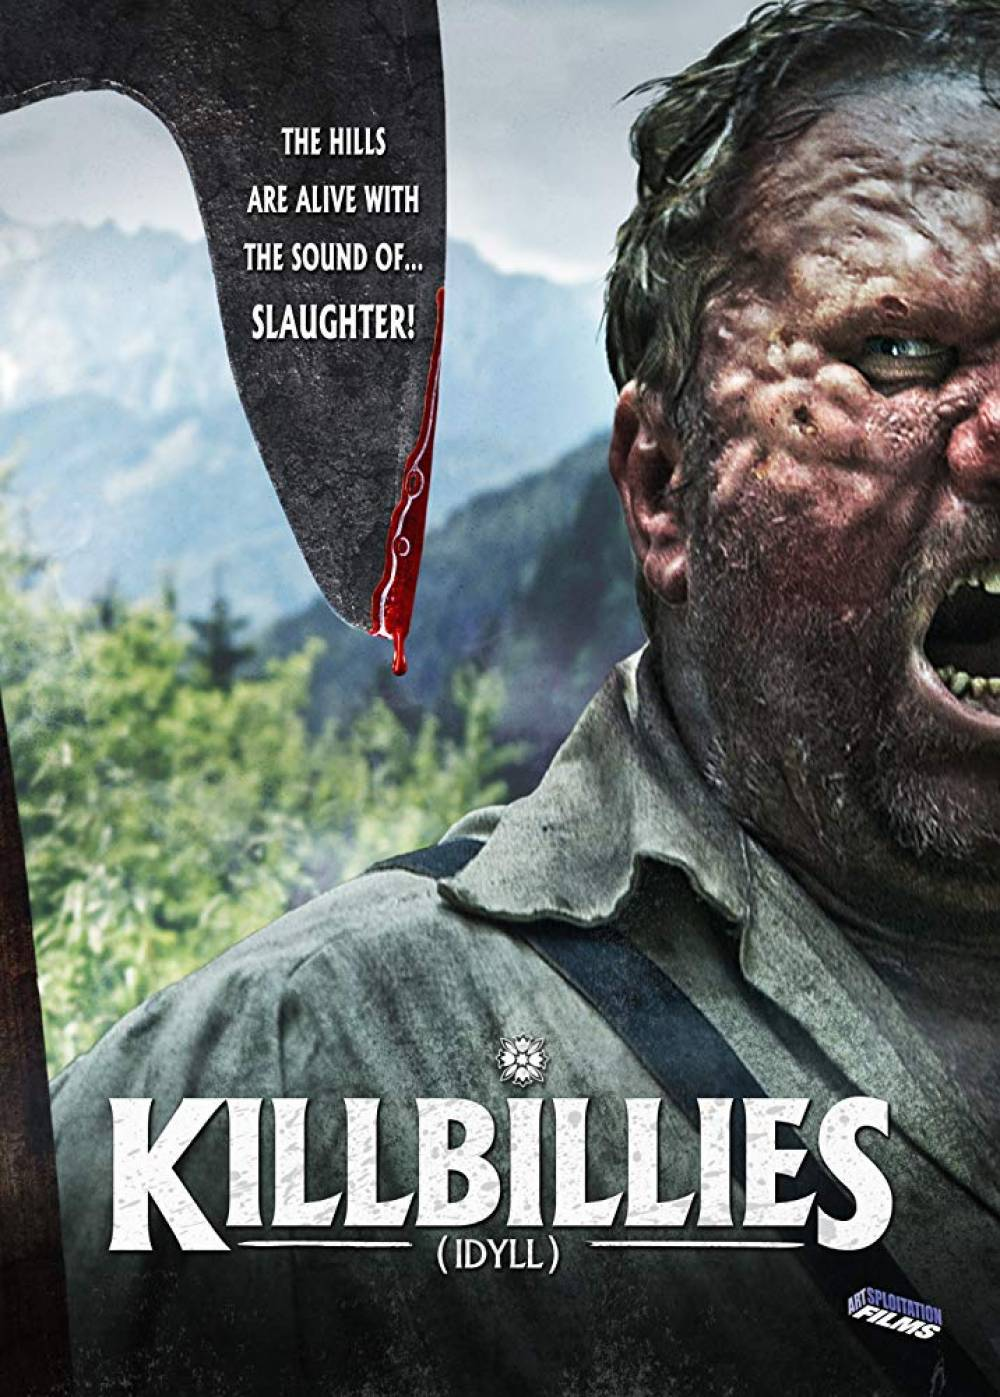 Killbillies (aka: Idyll)